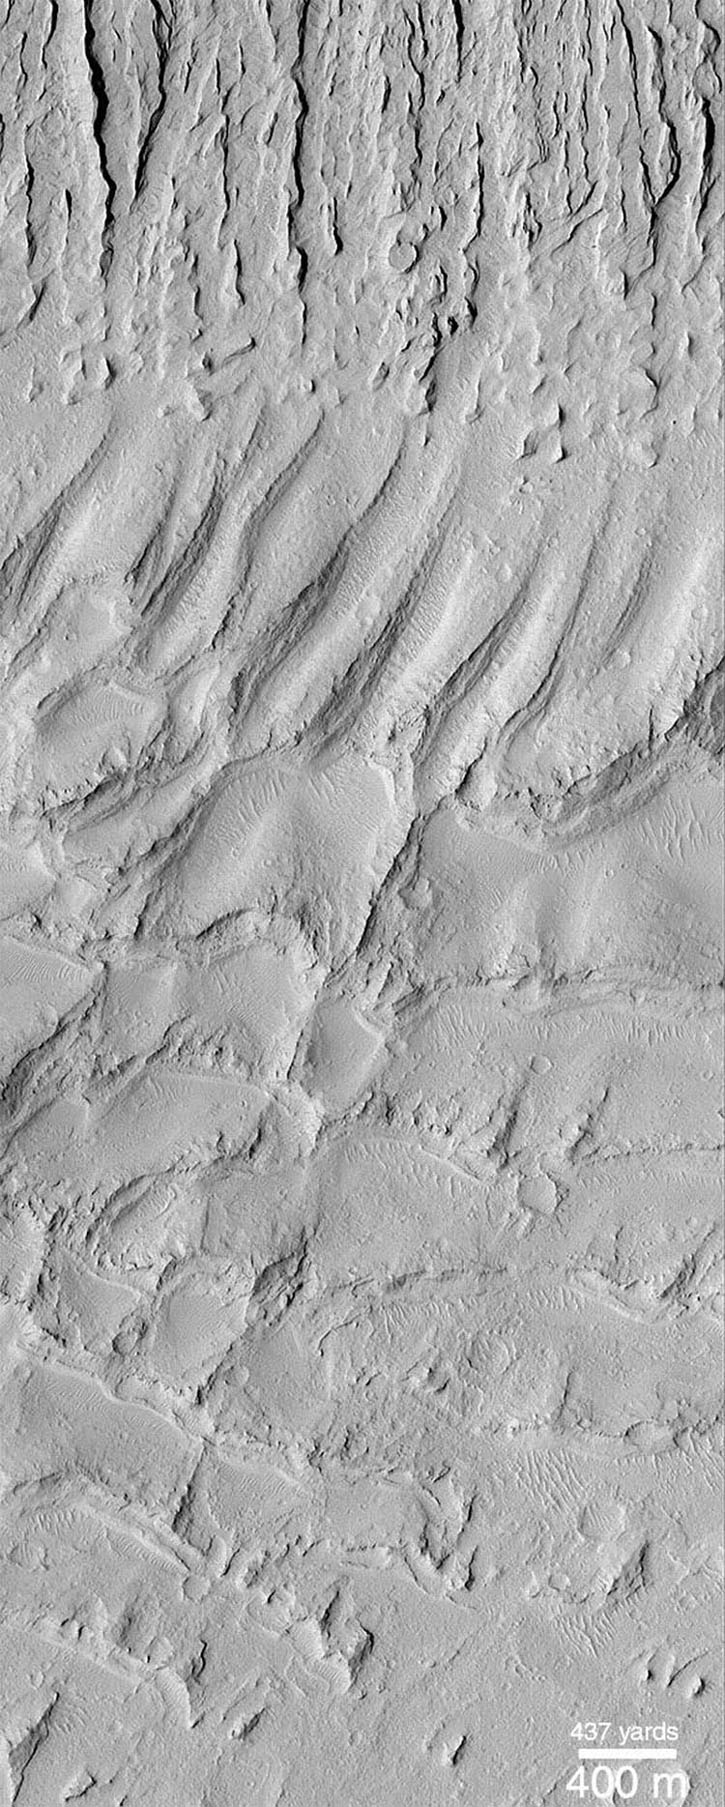 NASA's Mars Global Surveyor shows field of parallel ridges north of a dune field in a wind-eroded material named the Apollinaris Sulci.